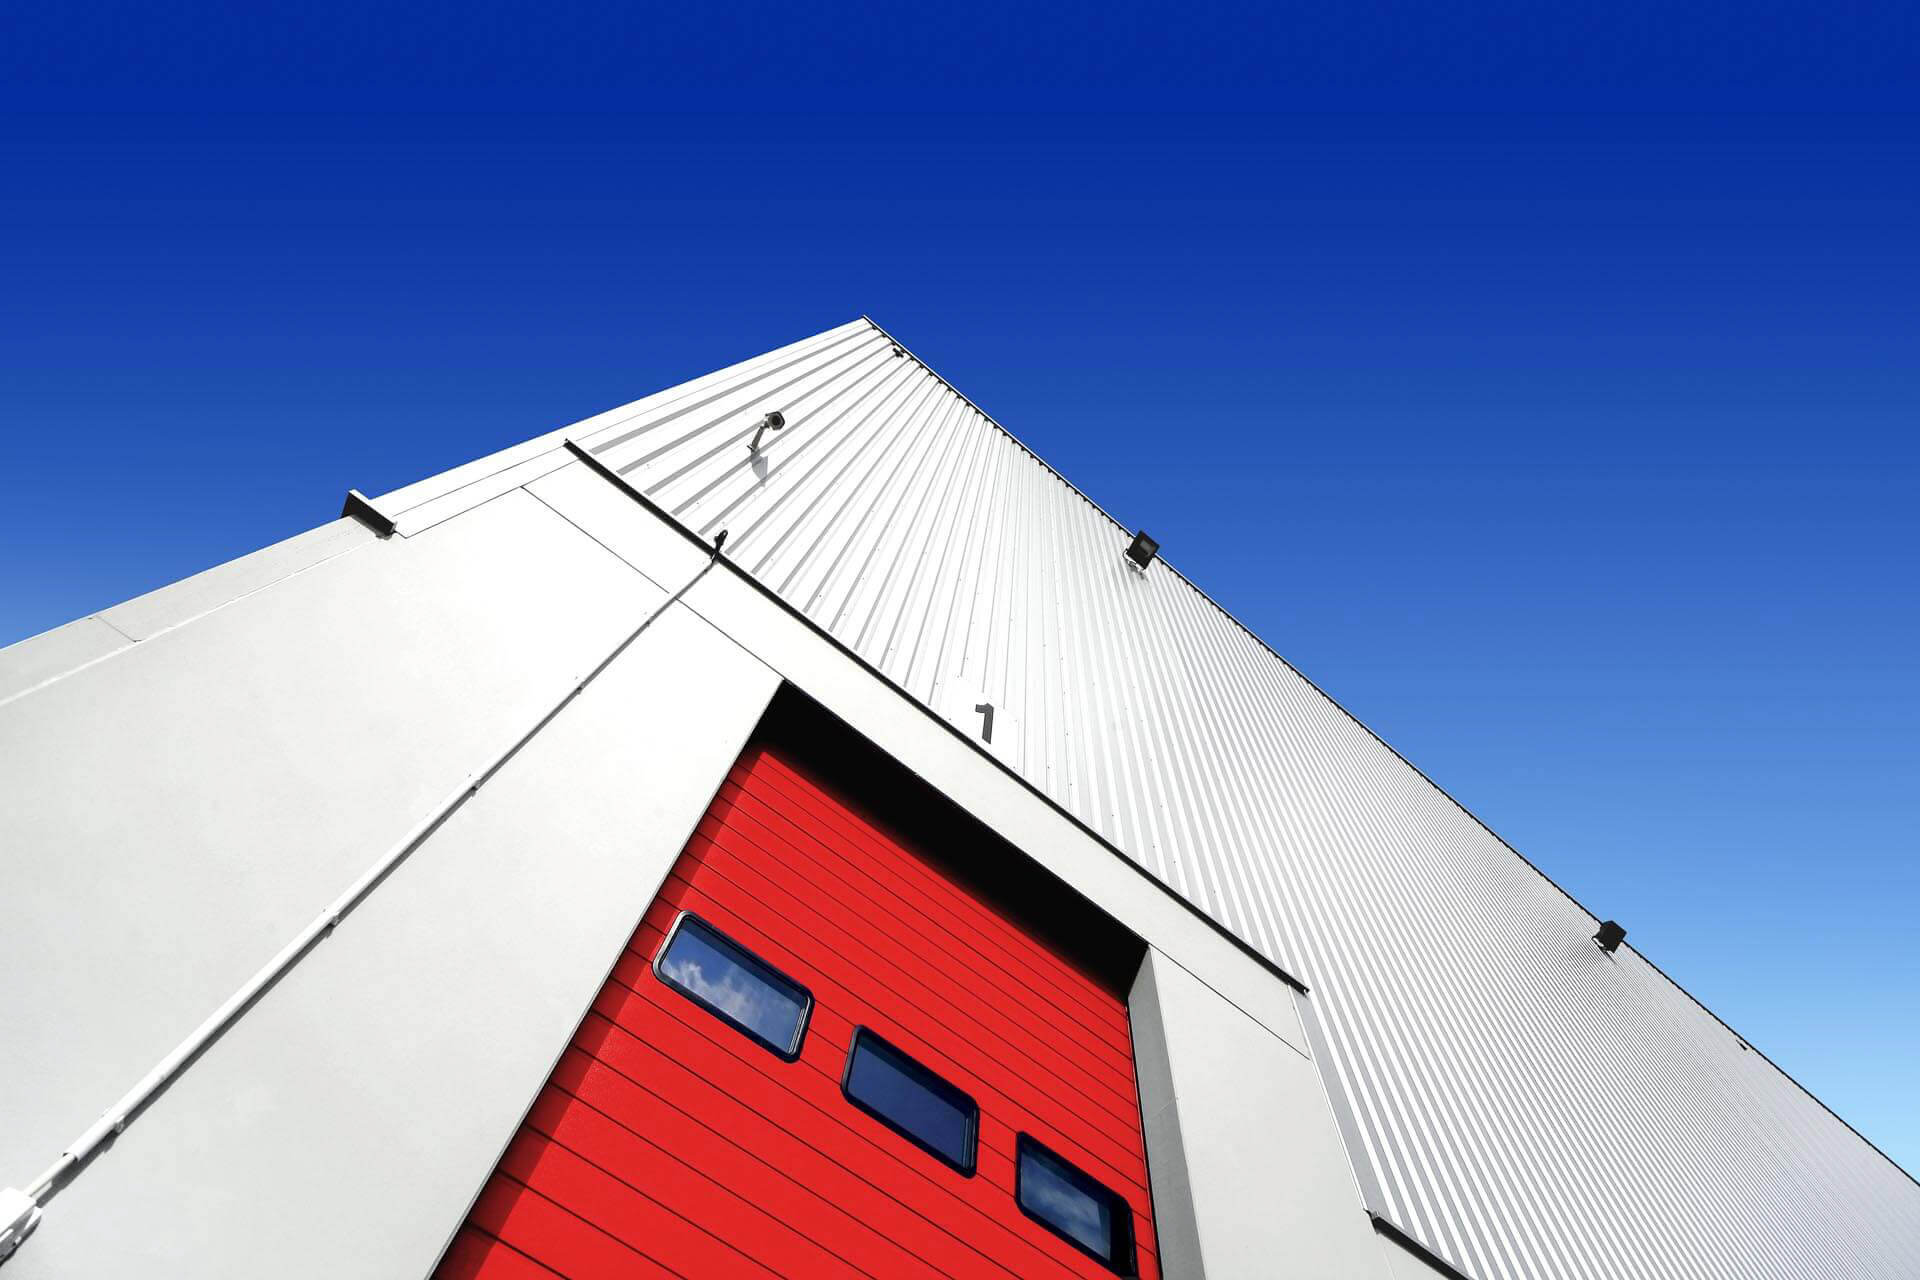 Red goods in folding entrance door with glazing and grey architectural metal cladding system and blue sky line.